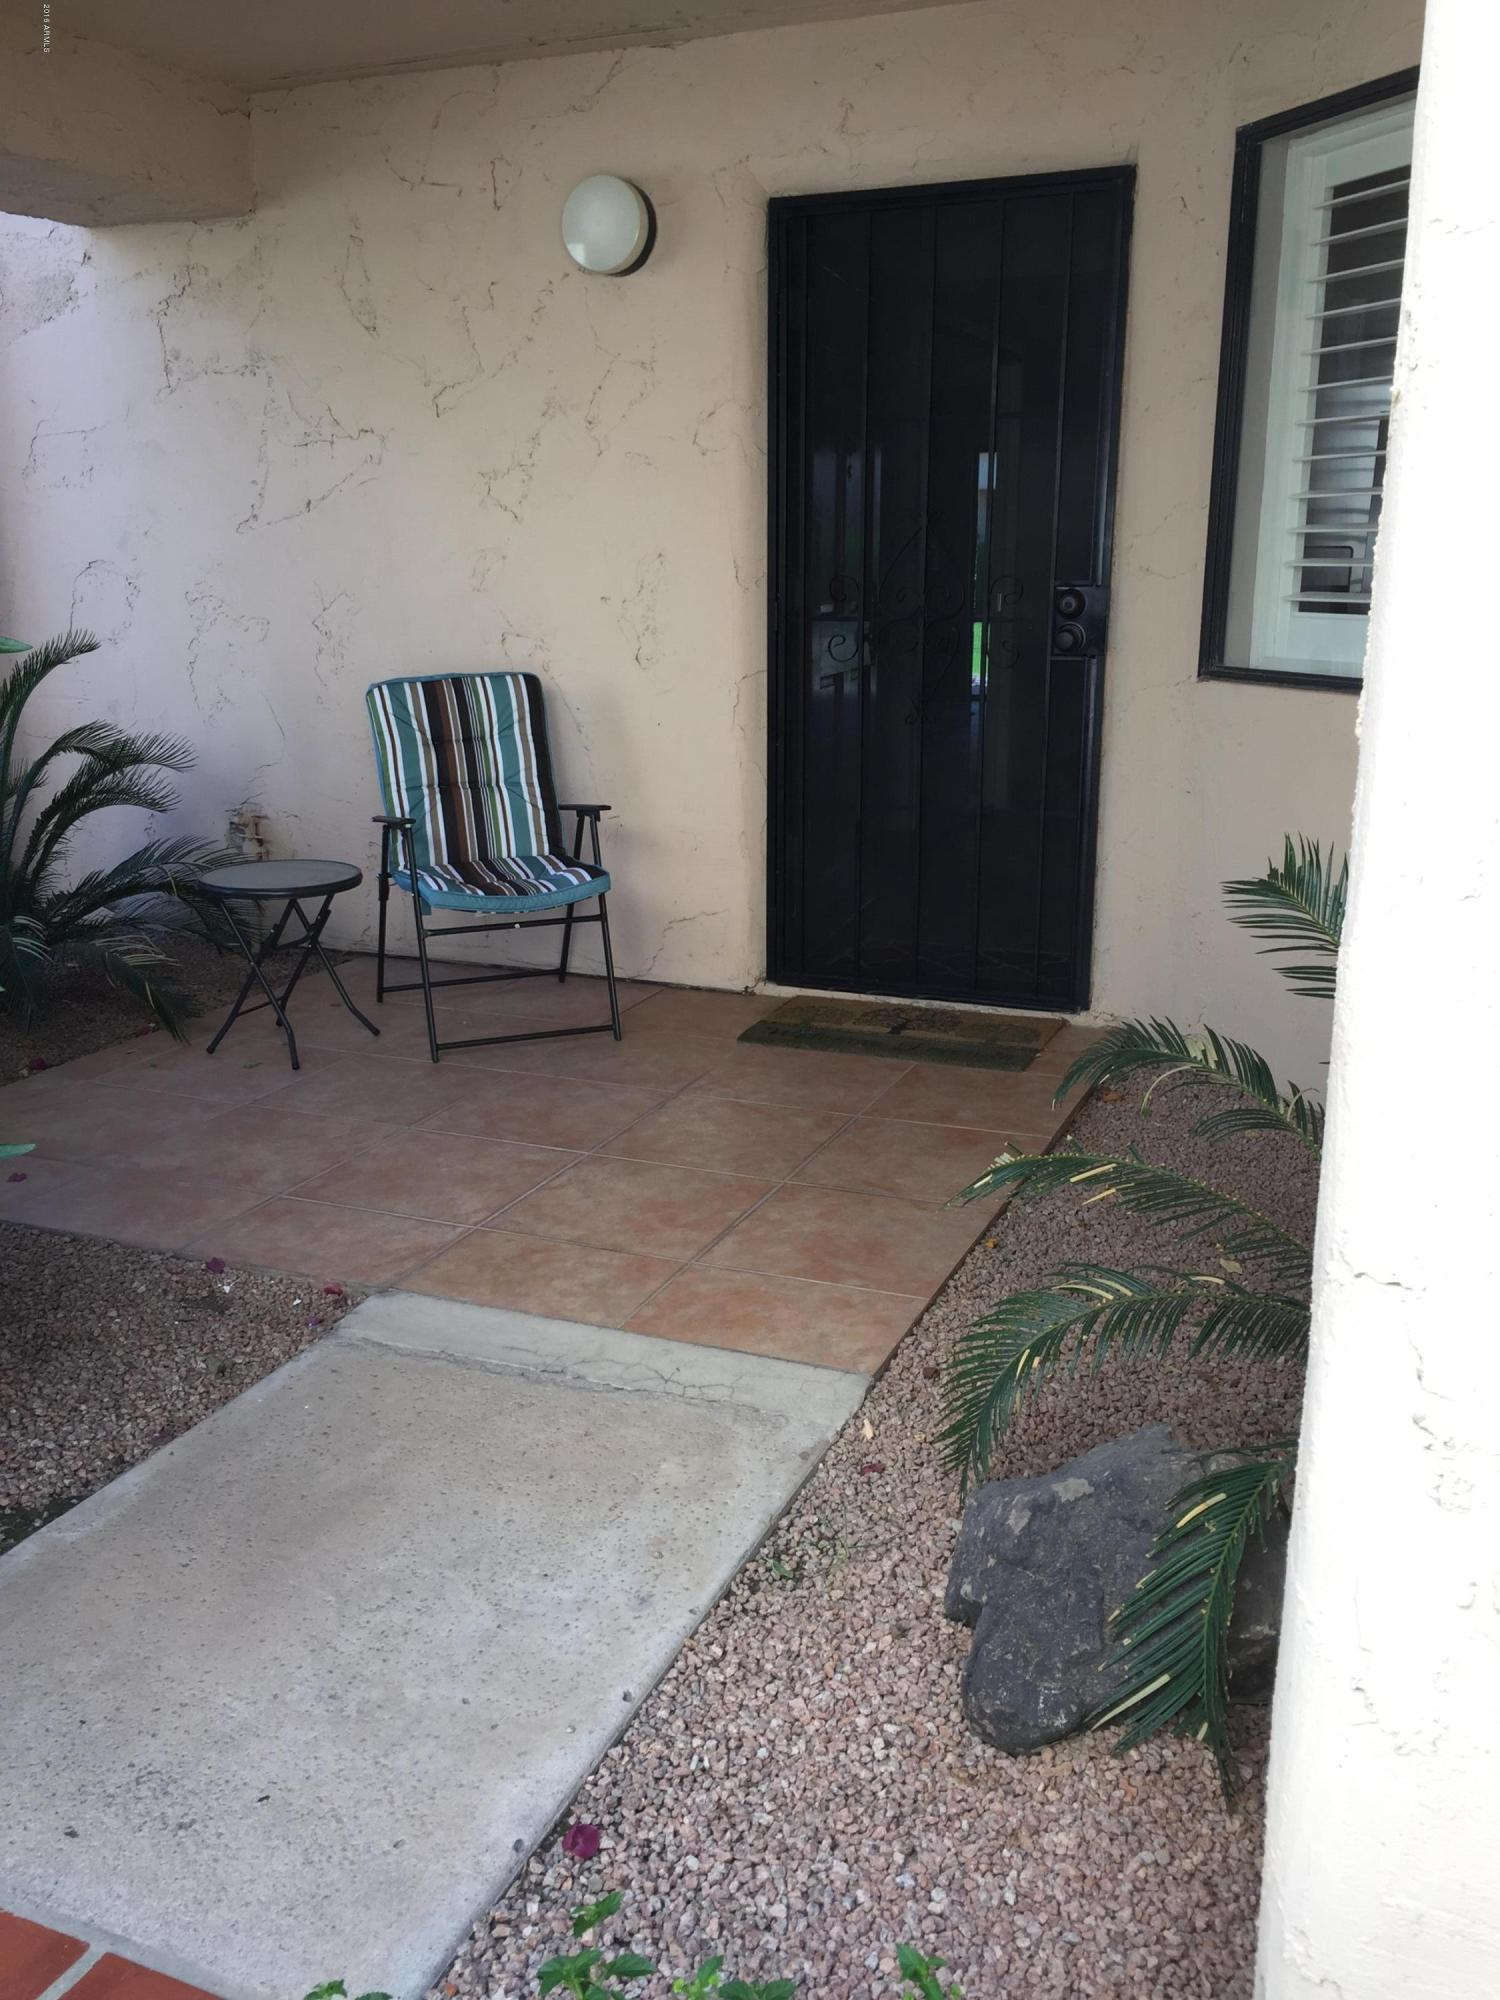 9345 N 92nd Street, Unit 114, Scottsdale AZ 85258 - Photo 1